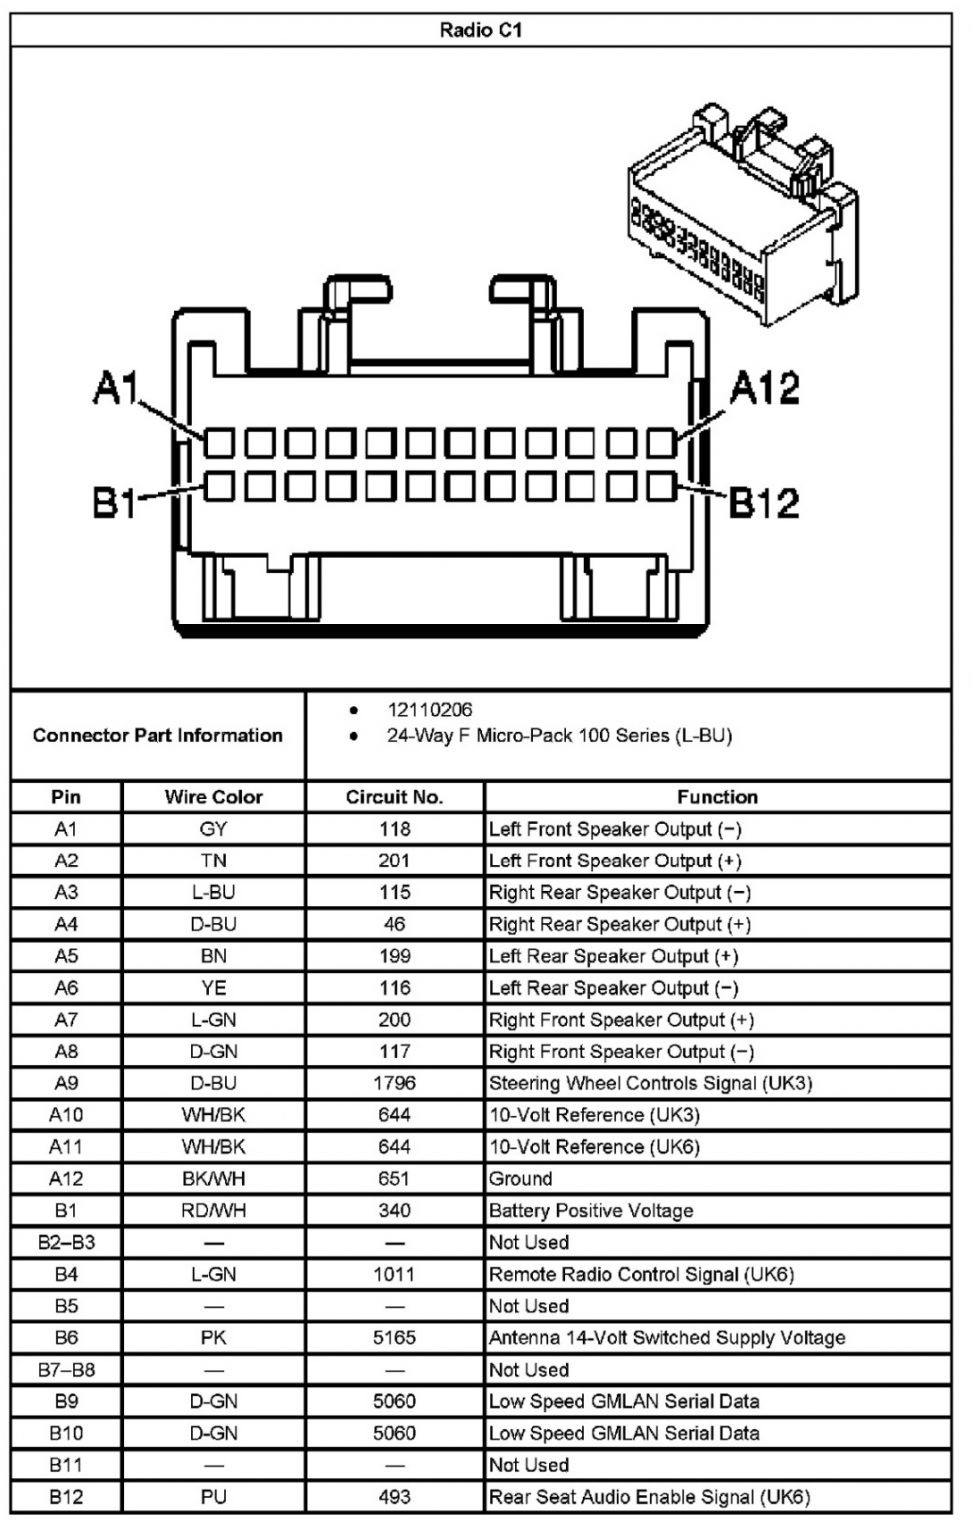 Chevy Malibu Radio Wiring Diagram Chevy Malibu Classic Stereo Wiring Diagram Wire Center U Rh N